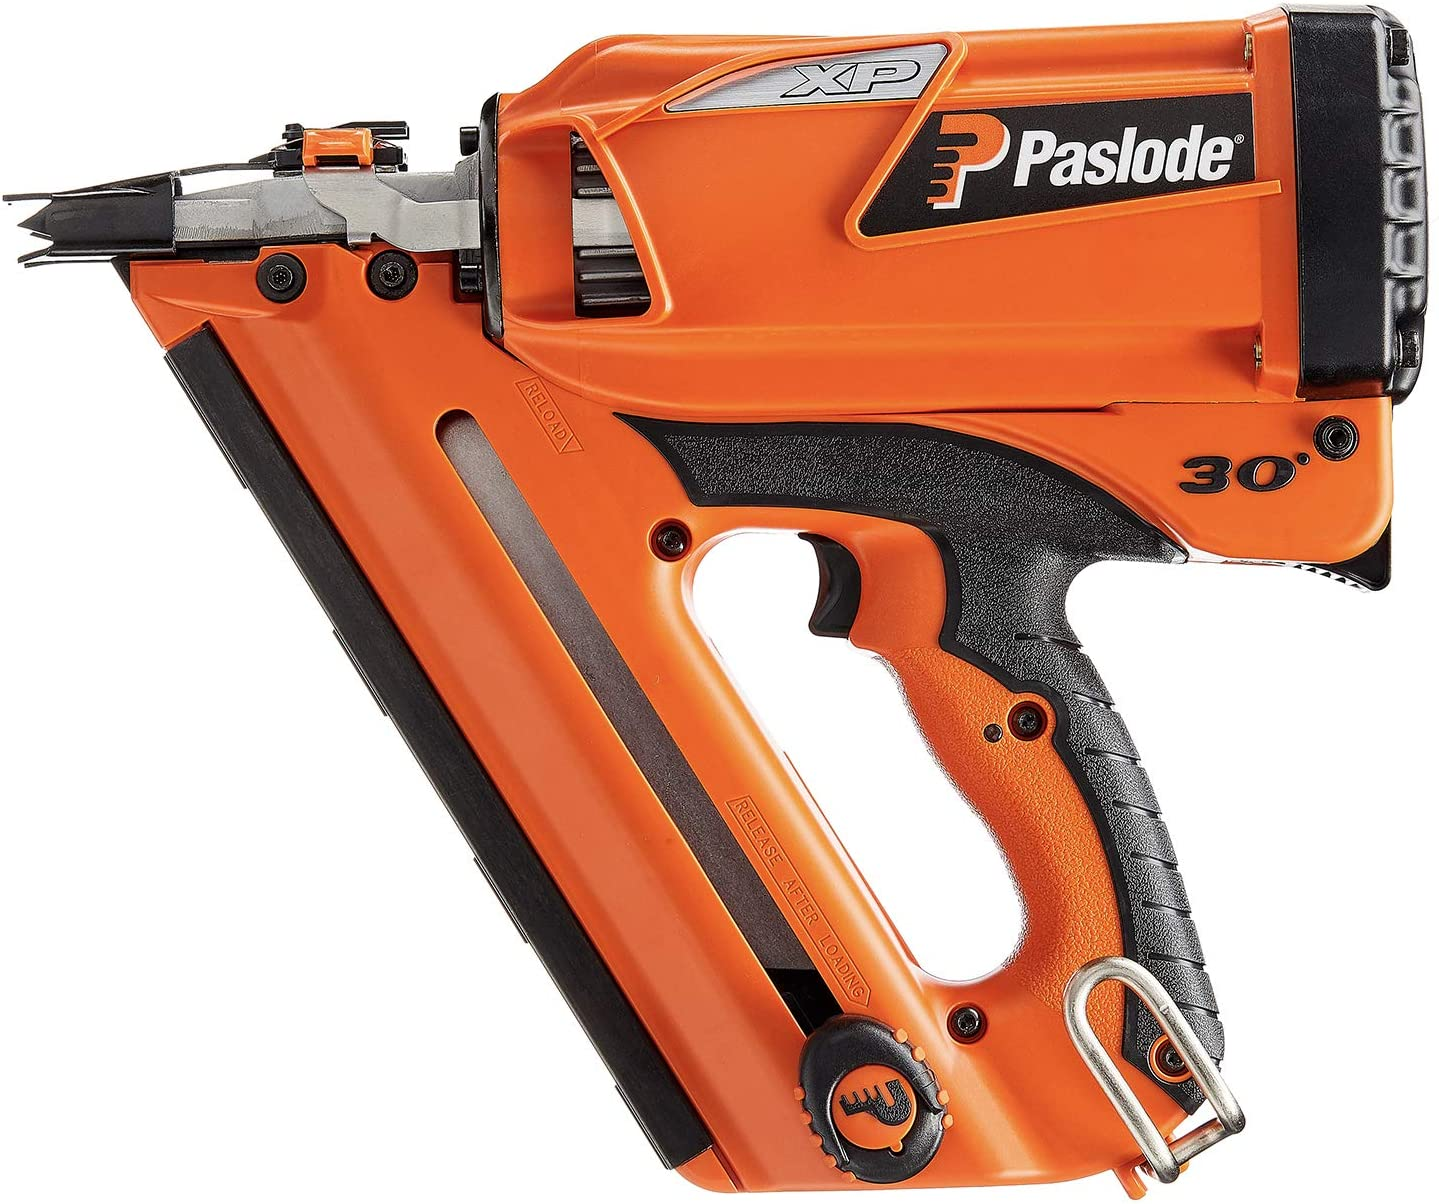 Paslode, Cordless XP Framing Nailer, 905600, Battery and Fuel Cell Powered, No Compressor Needed